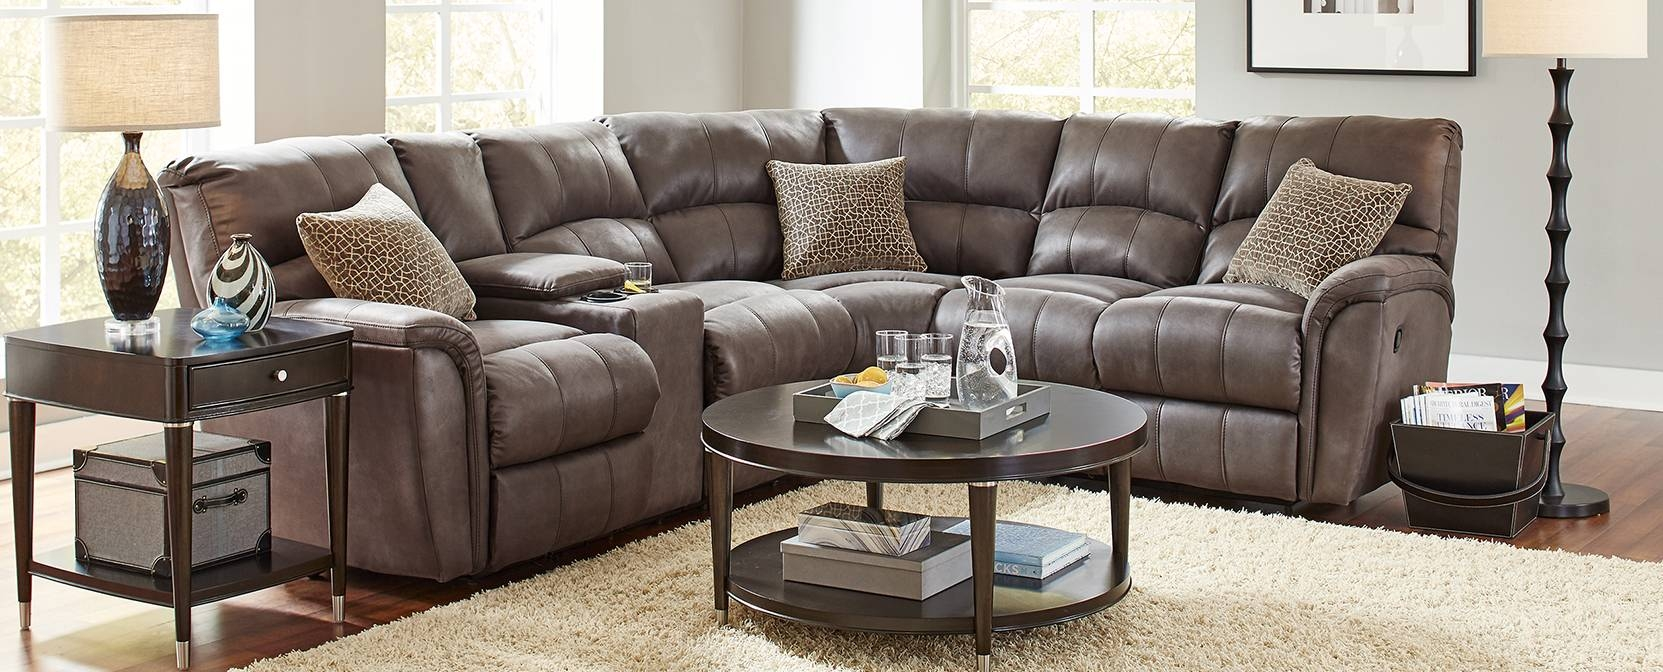 Sectional Couches | Living Room Sectionals | Lane Furniture | Lane with Lane Furniture Sofas (Image 24 of 25)